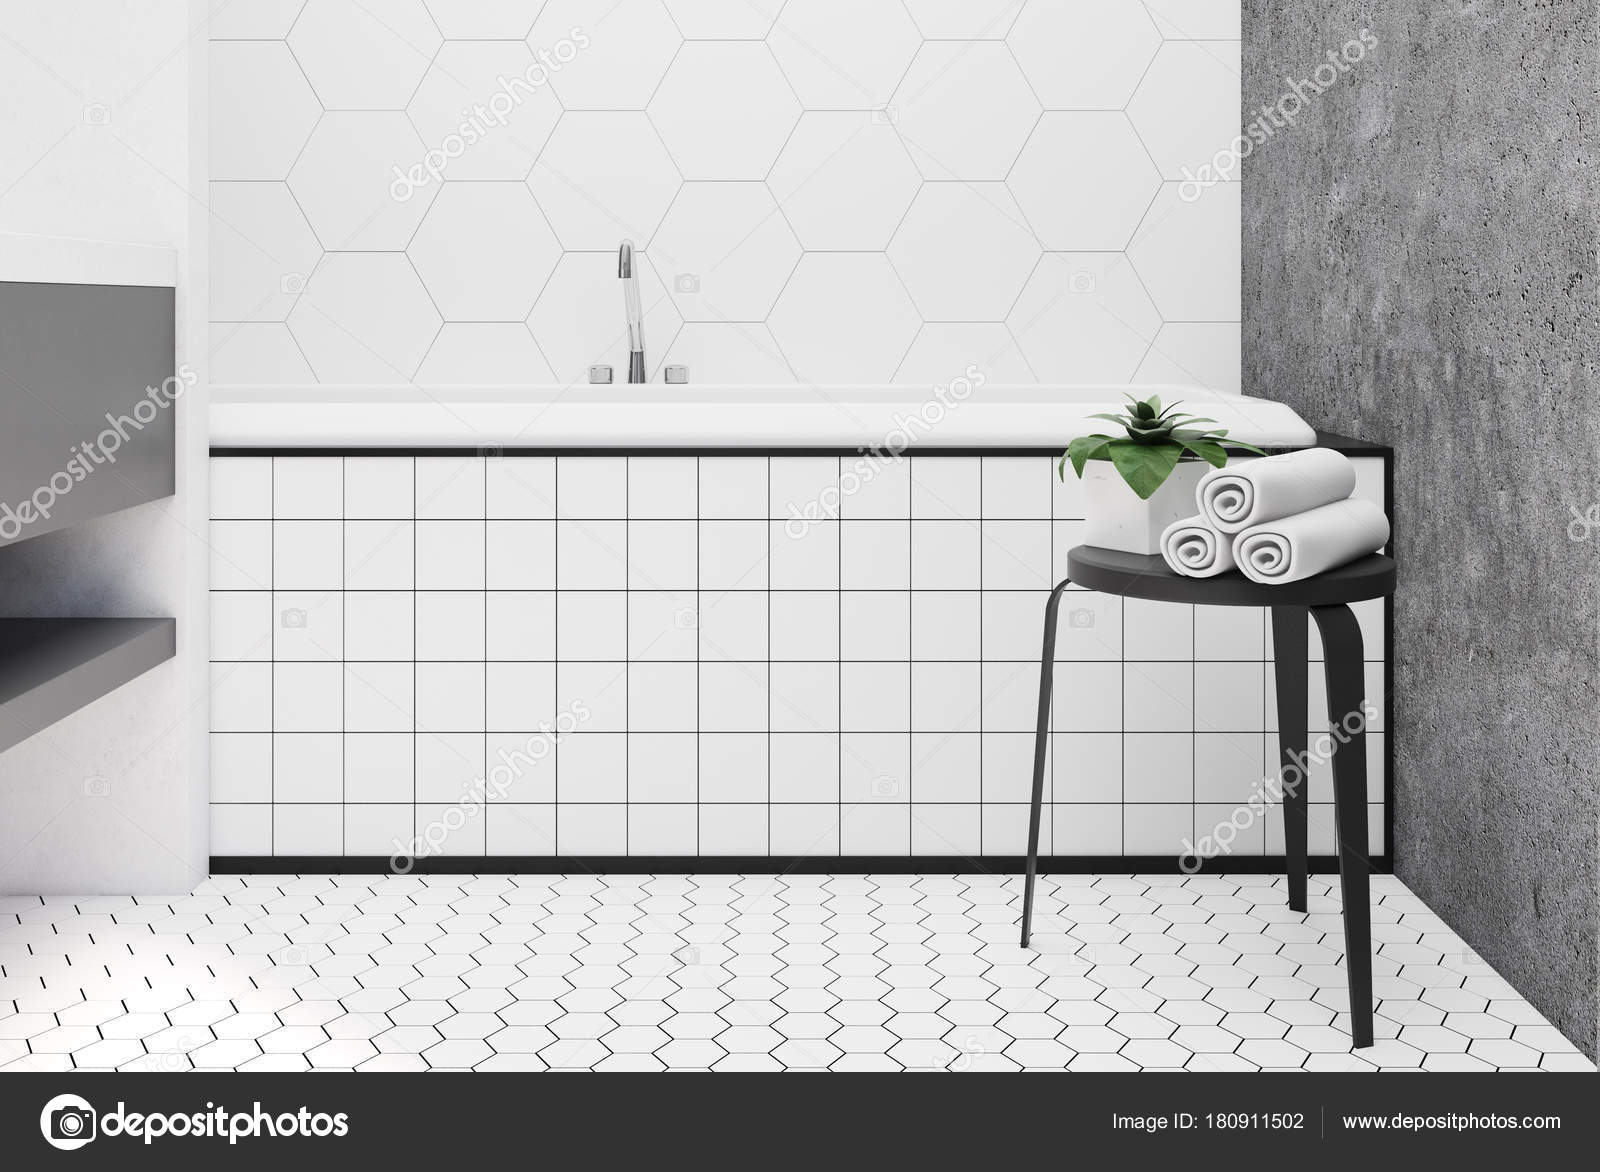 Hexagon Tegels Badkamer : Hexagon tegels badkamer bad close up u stockfoto denisismagilov